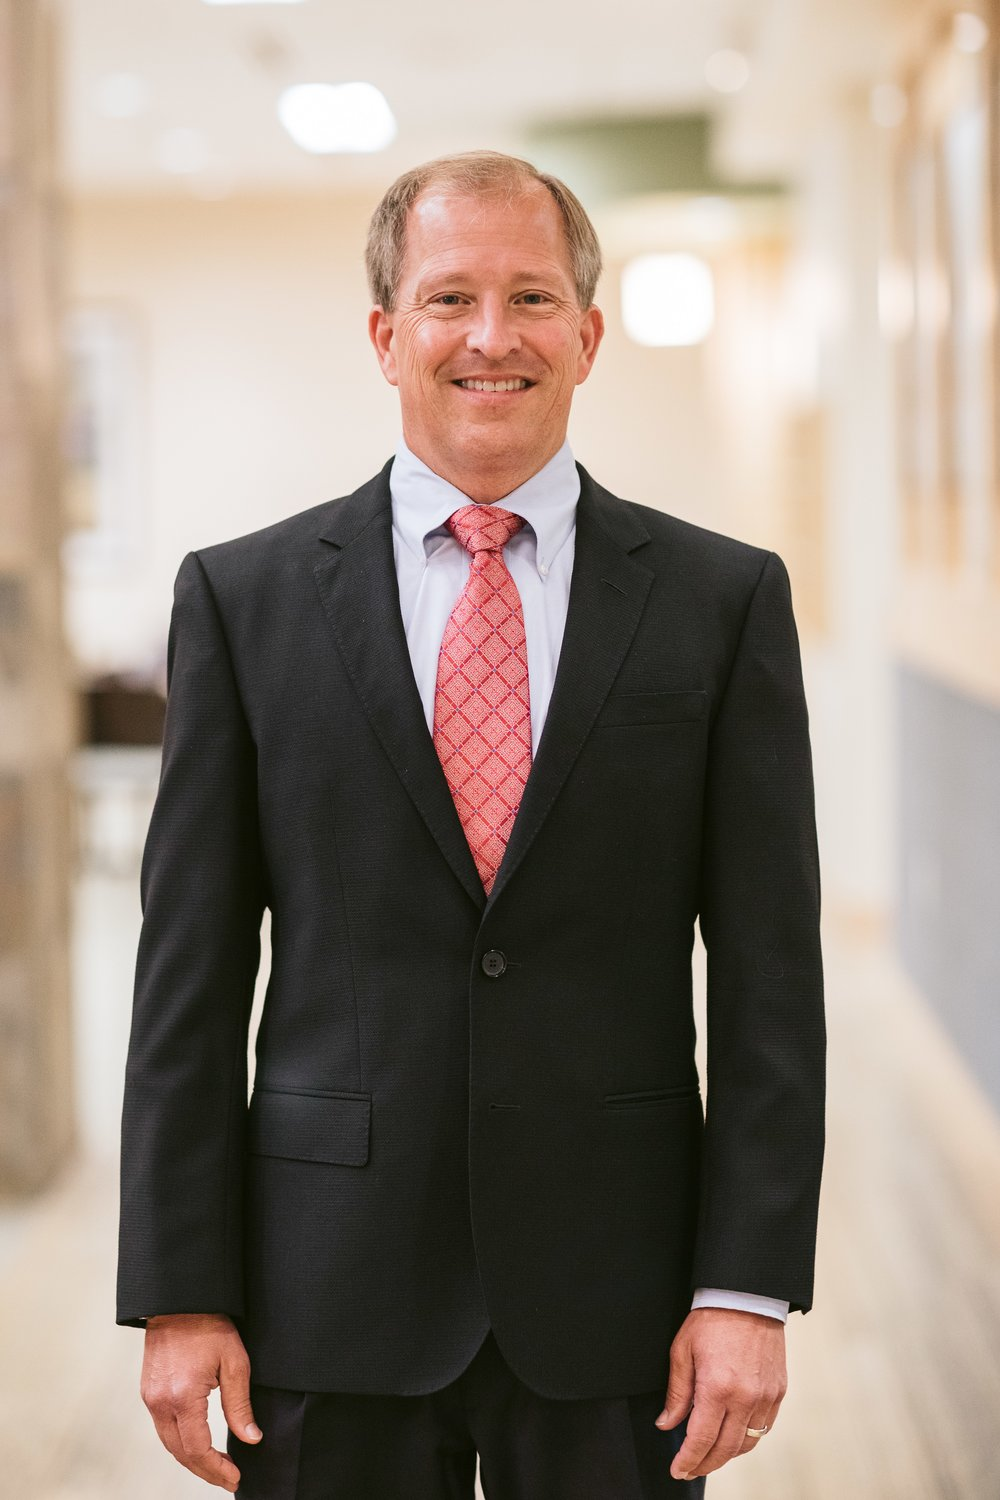 "Dr. Jeff Forslund completed his undergraduate degree from the University of St. Thomas and graduated from the University of Minnesota School of Dentistry in 1988.  After graduating, he served 4 years in the Navy and has been with Southern Heights Dental group since 1993.  When asked about his favorite part of dentistry, he responded""I enjoy all aspects of Family/General Dentistry and have a special interest in helping people with sleep apnea and TMJ problems"". A Diplomate of the American Board of Dental Sleep Medicine American Academy of Dental Sleep Medicine (AADSM), Member International Association of Physiologic Aesthetics, Member. Licensed by the State of Minnesota"